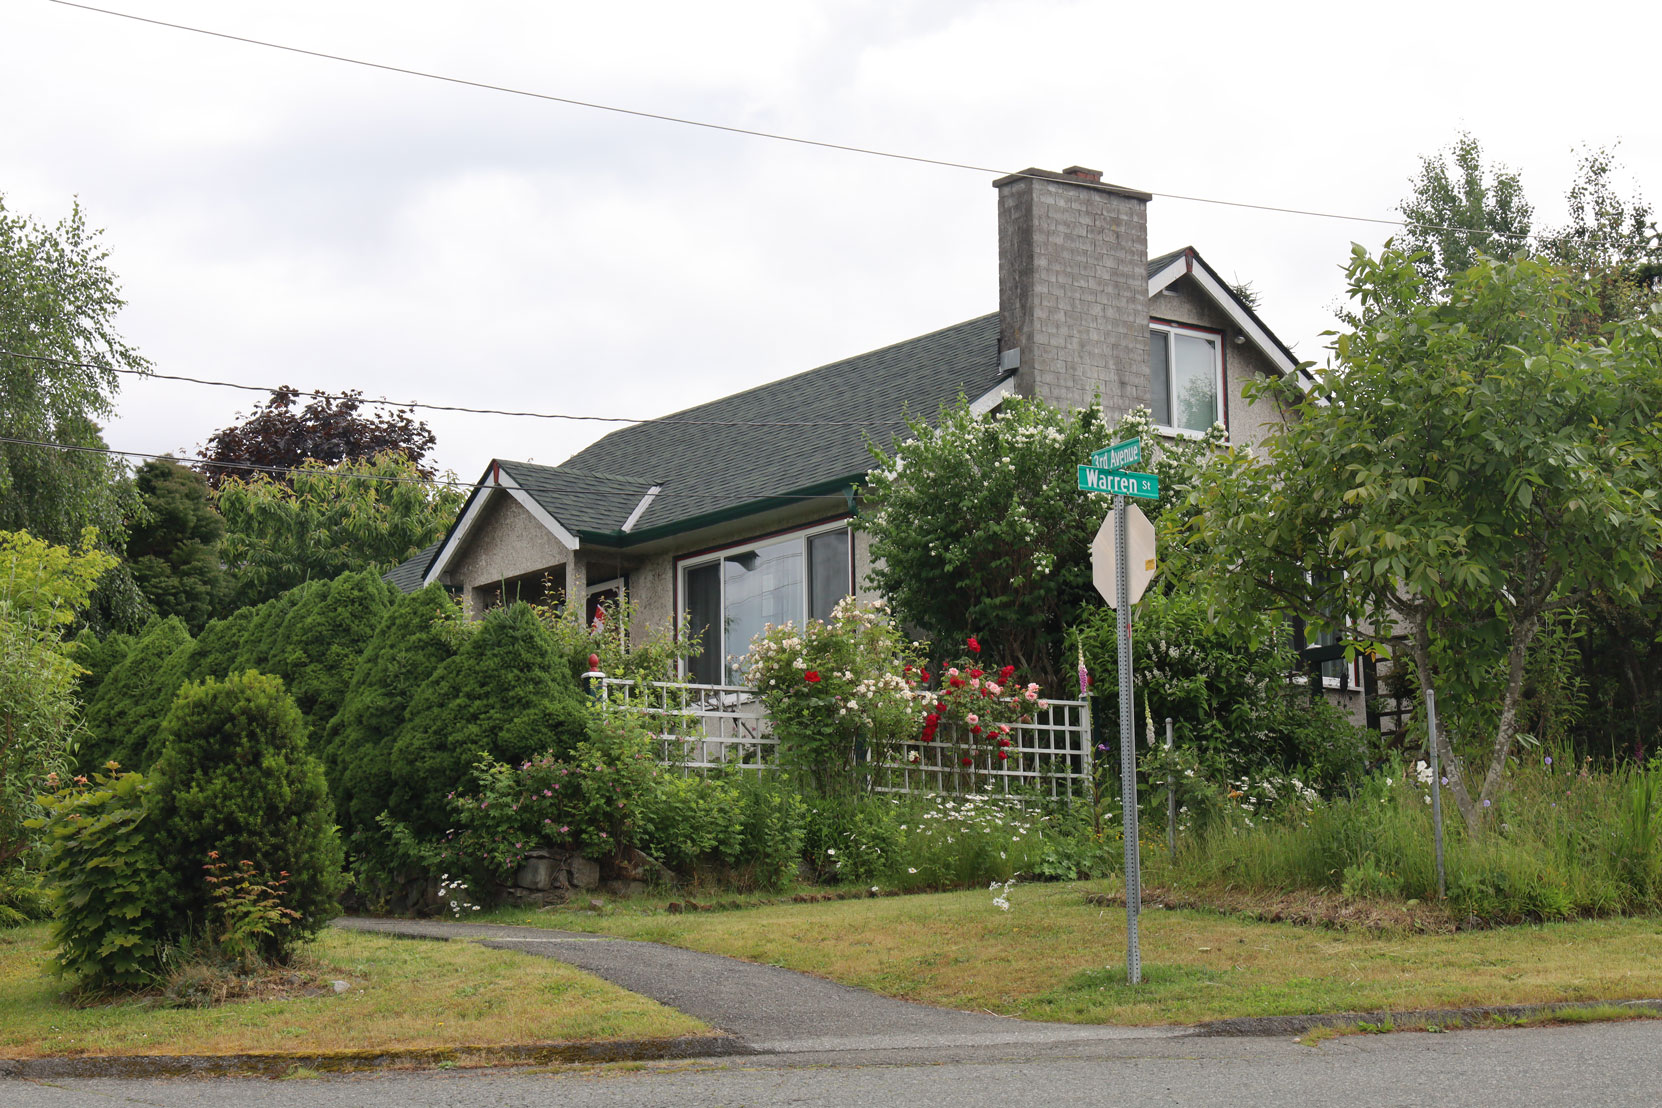 940 3rd Avenue, built in 1950 (photo: Mark Anderson)